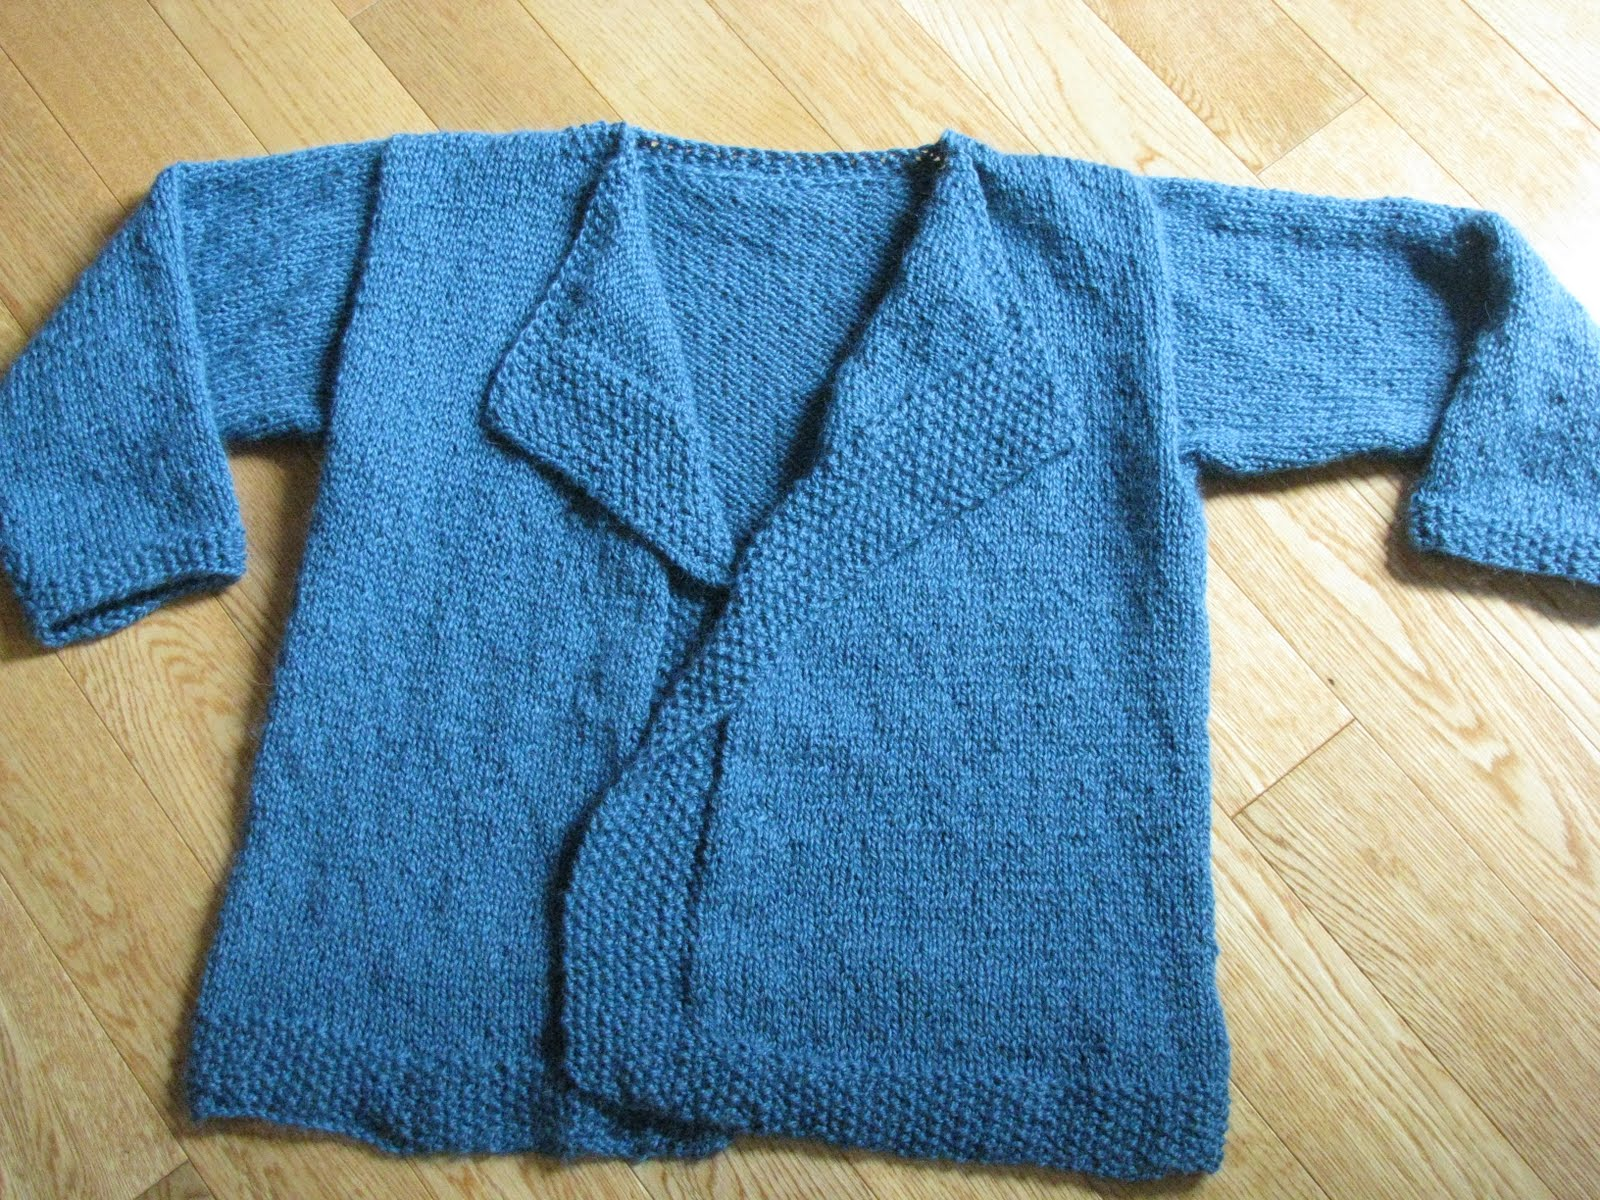 Chris Knits in Niagara: Alpaca Silk Easy Cardi